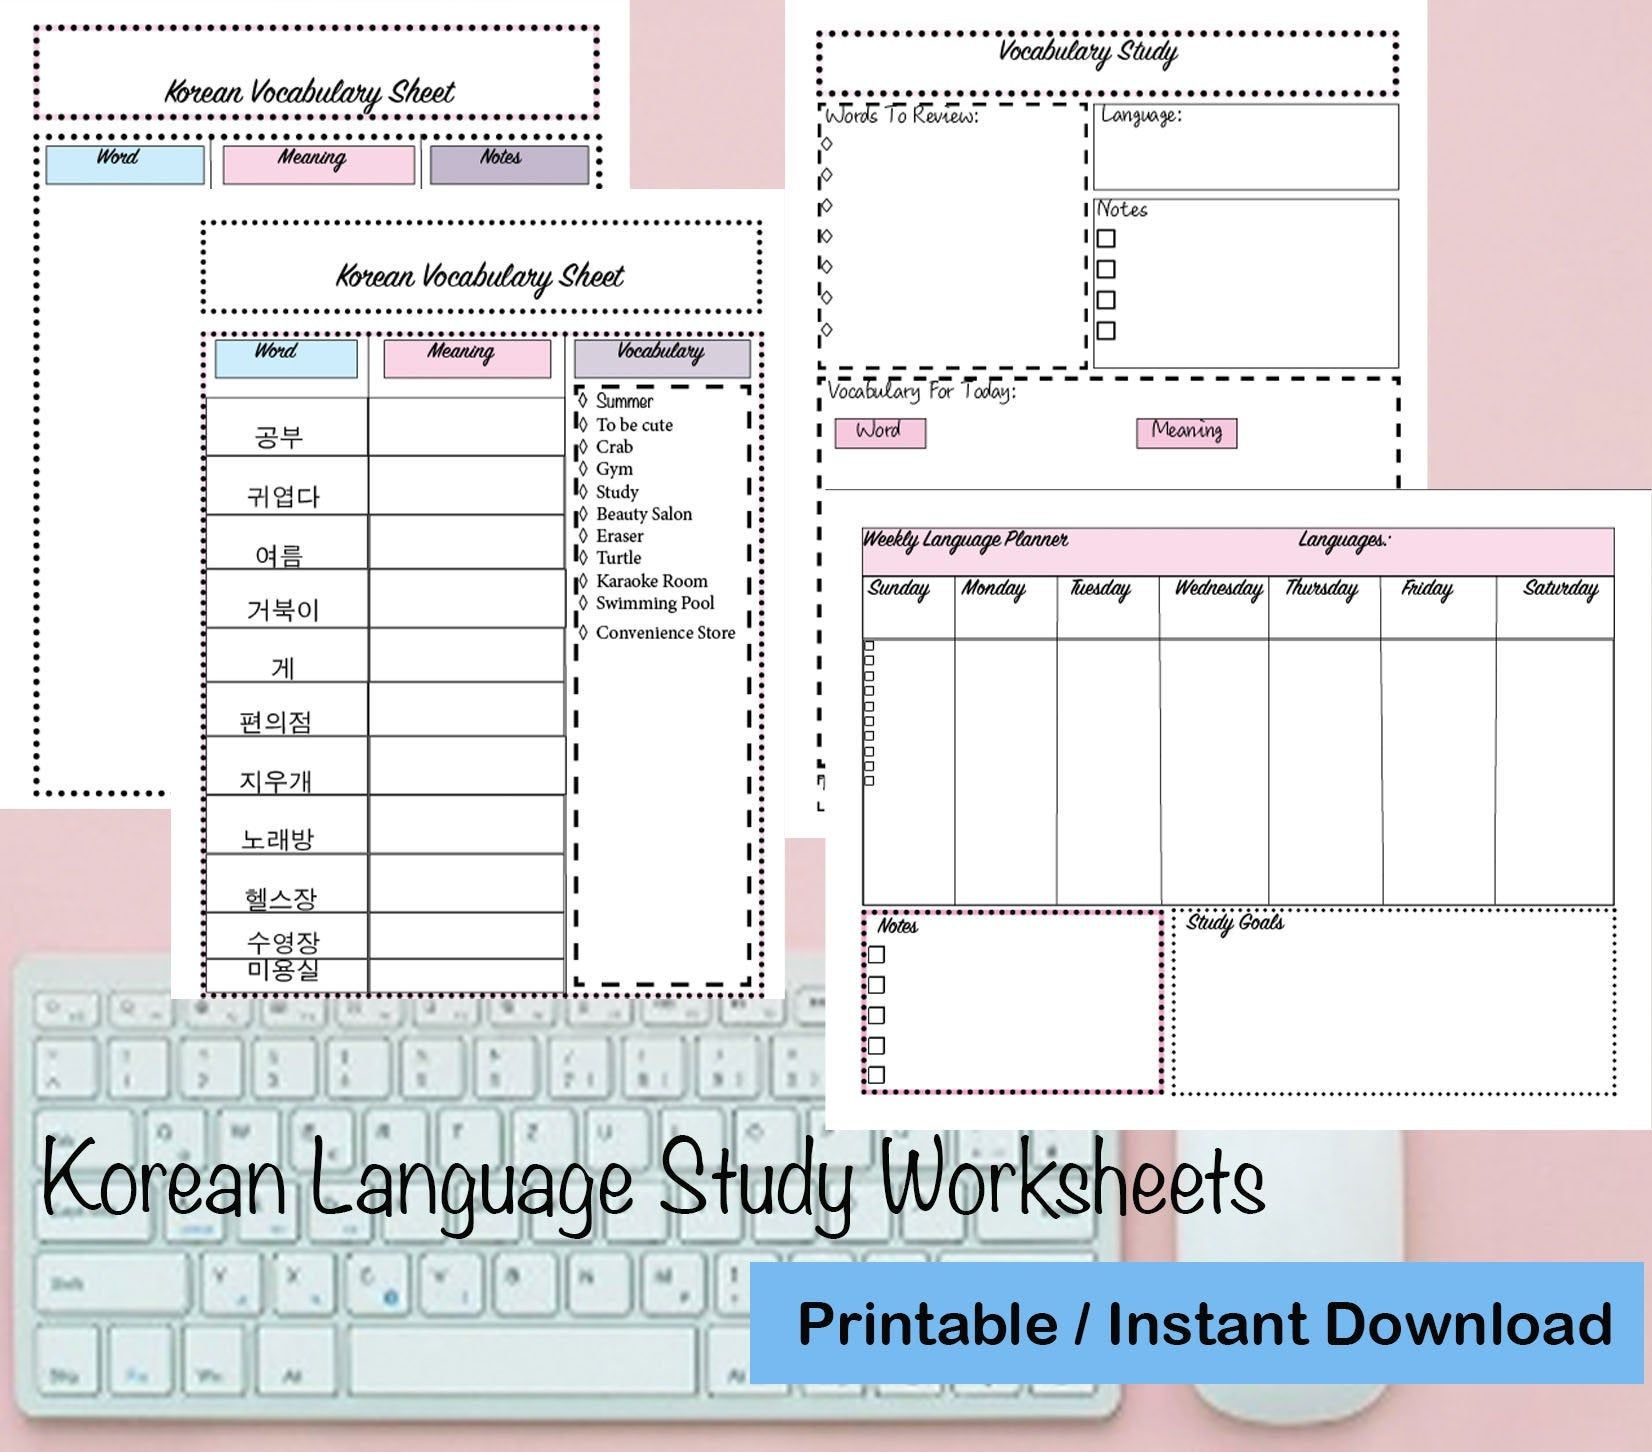 Korean Language Study Worksheets Instant Download